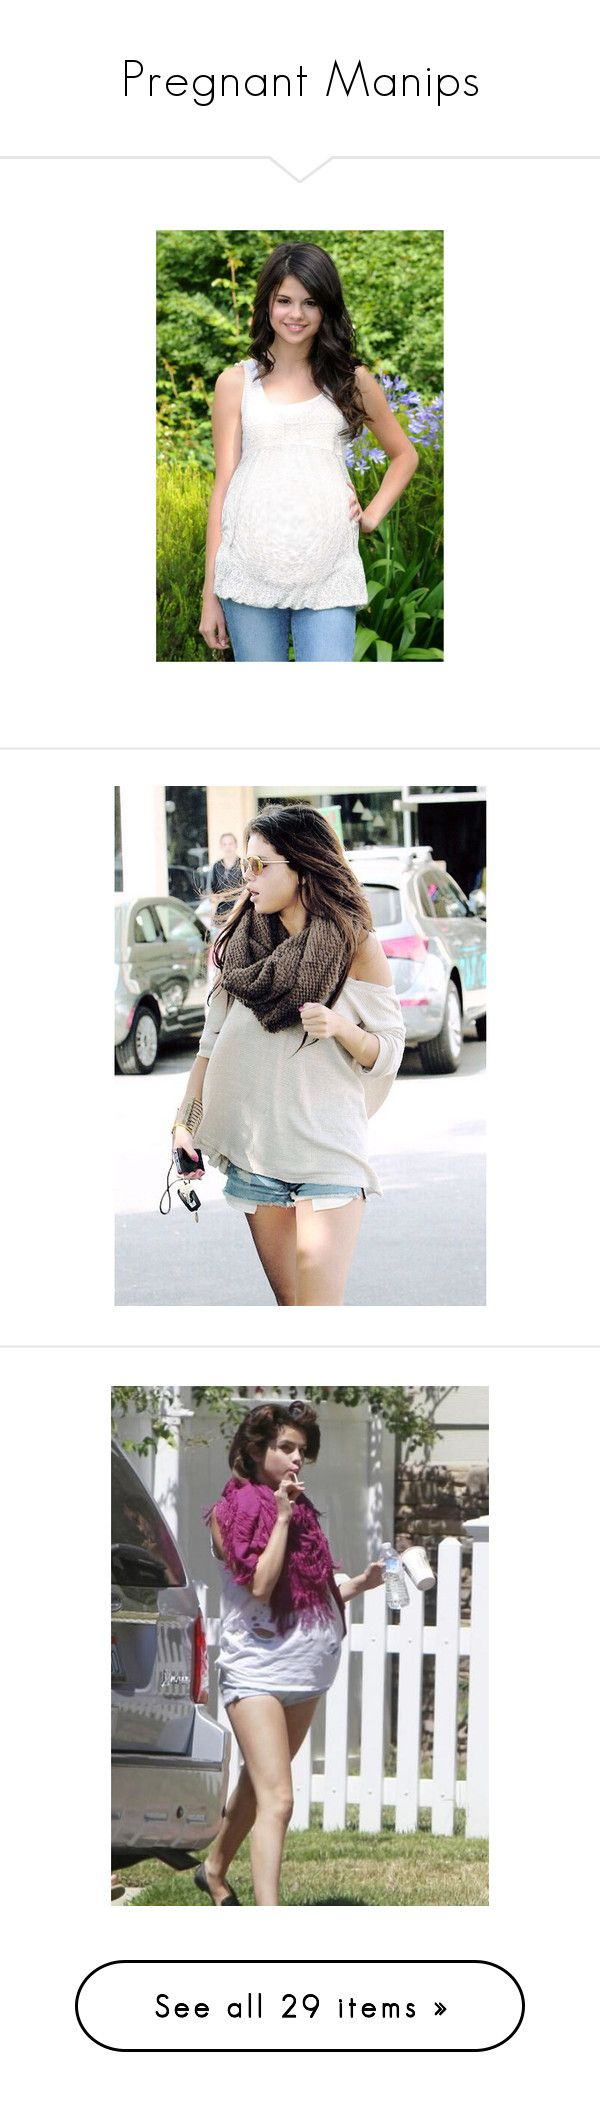 """Pregnant Manips"" by harrysdimplebaby ❤ liked on Polyvore featuring selena gomez, pregnant, selena, my anon, pregnancy, babies, manips, sarry, harlena and maternity"